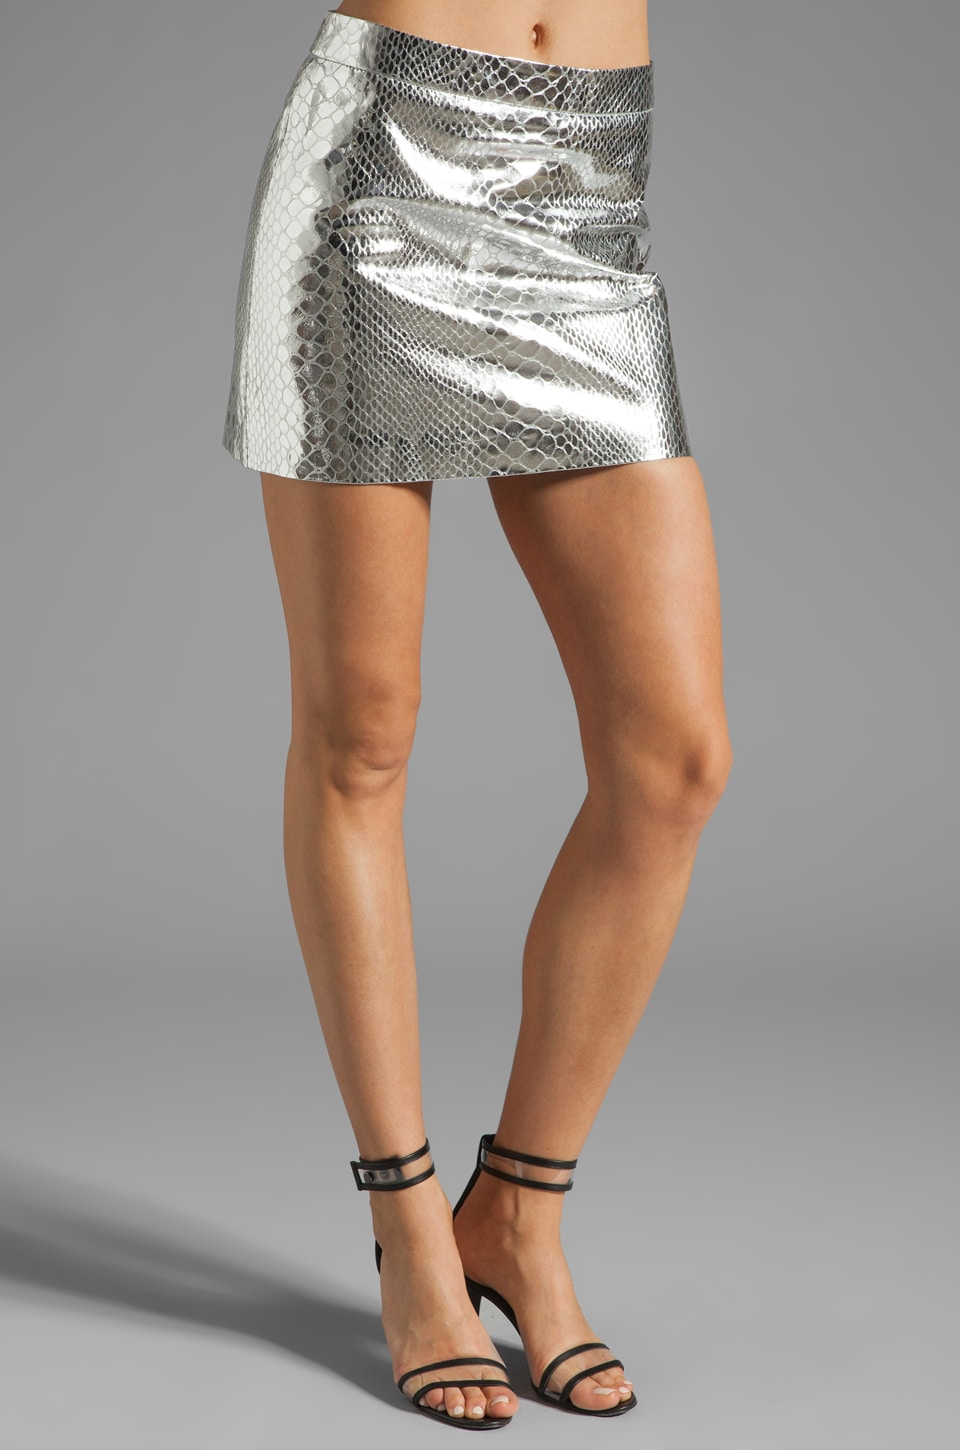 MILLY Mirrored Python Mini Skirt in Silver